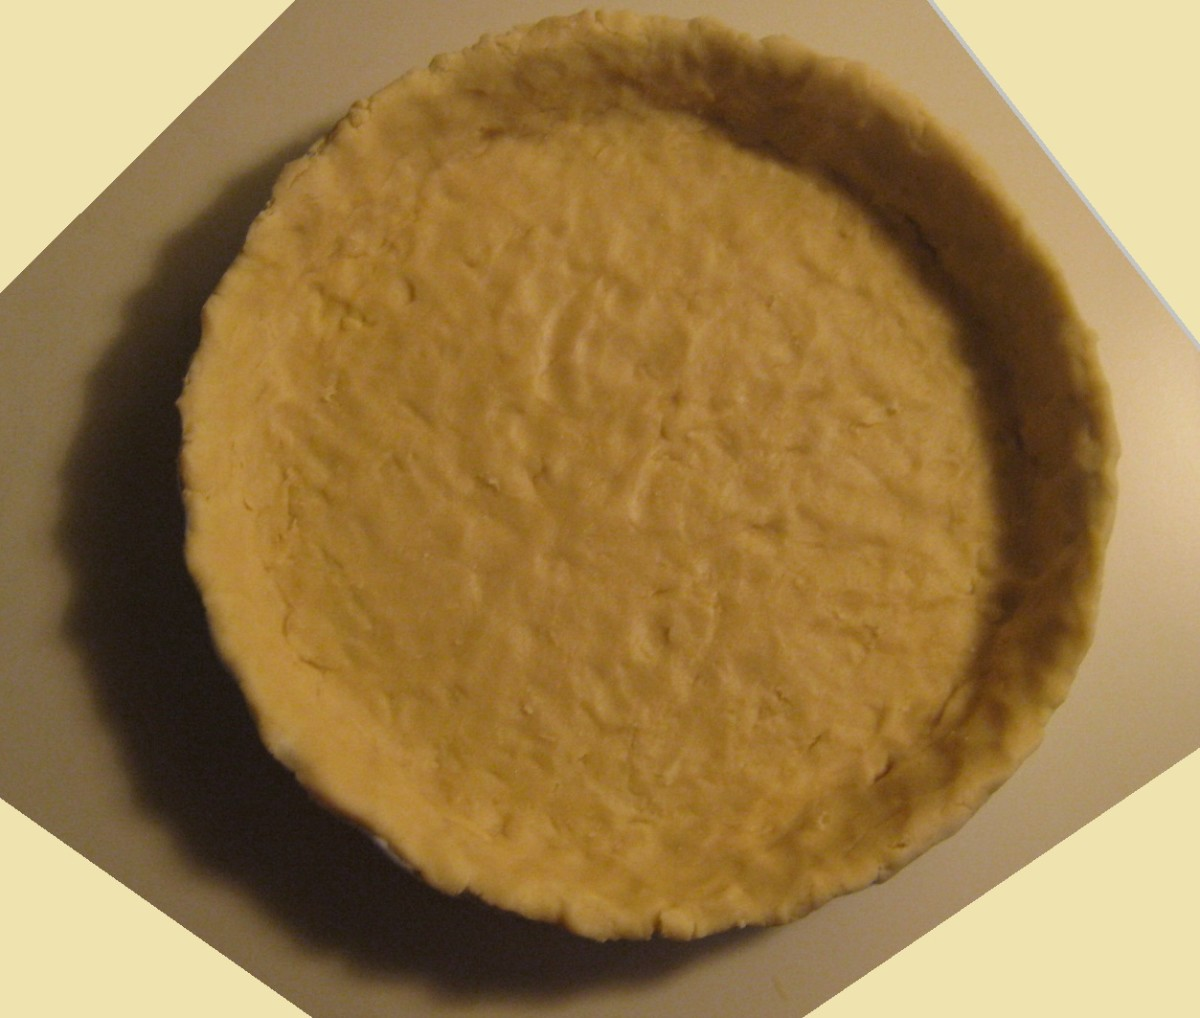 This from-scratch pie crust does not require refrigeration!